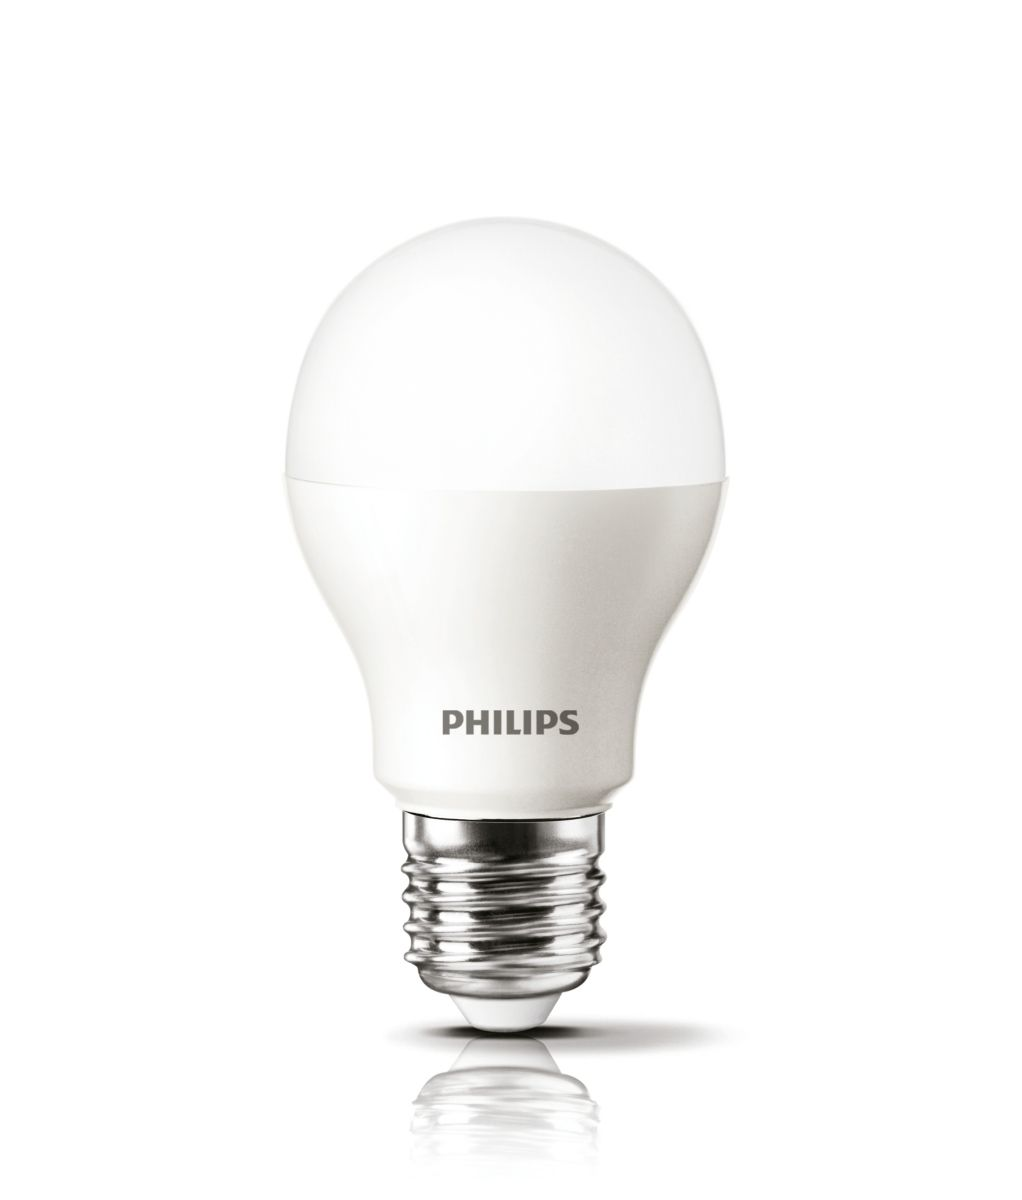 Led Lampen Corepro Led Lampen Led Ballonlampen Philips Lighting